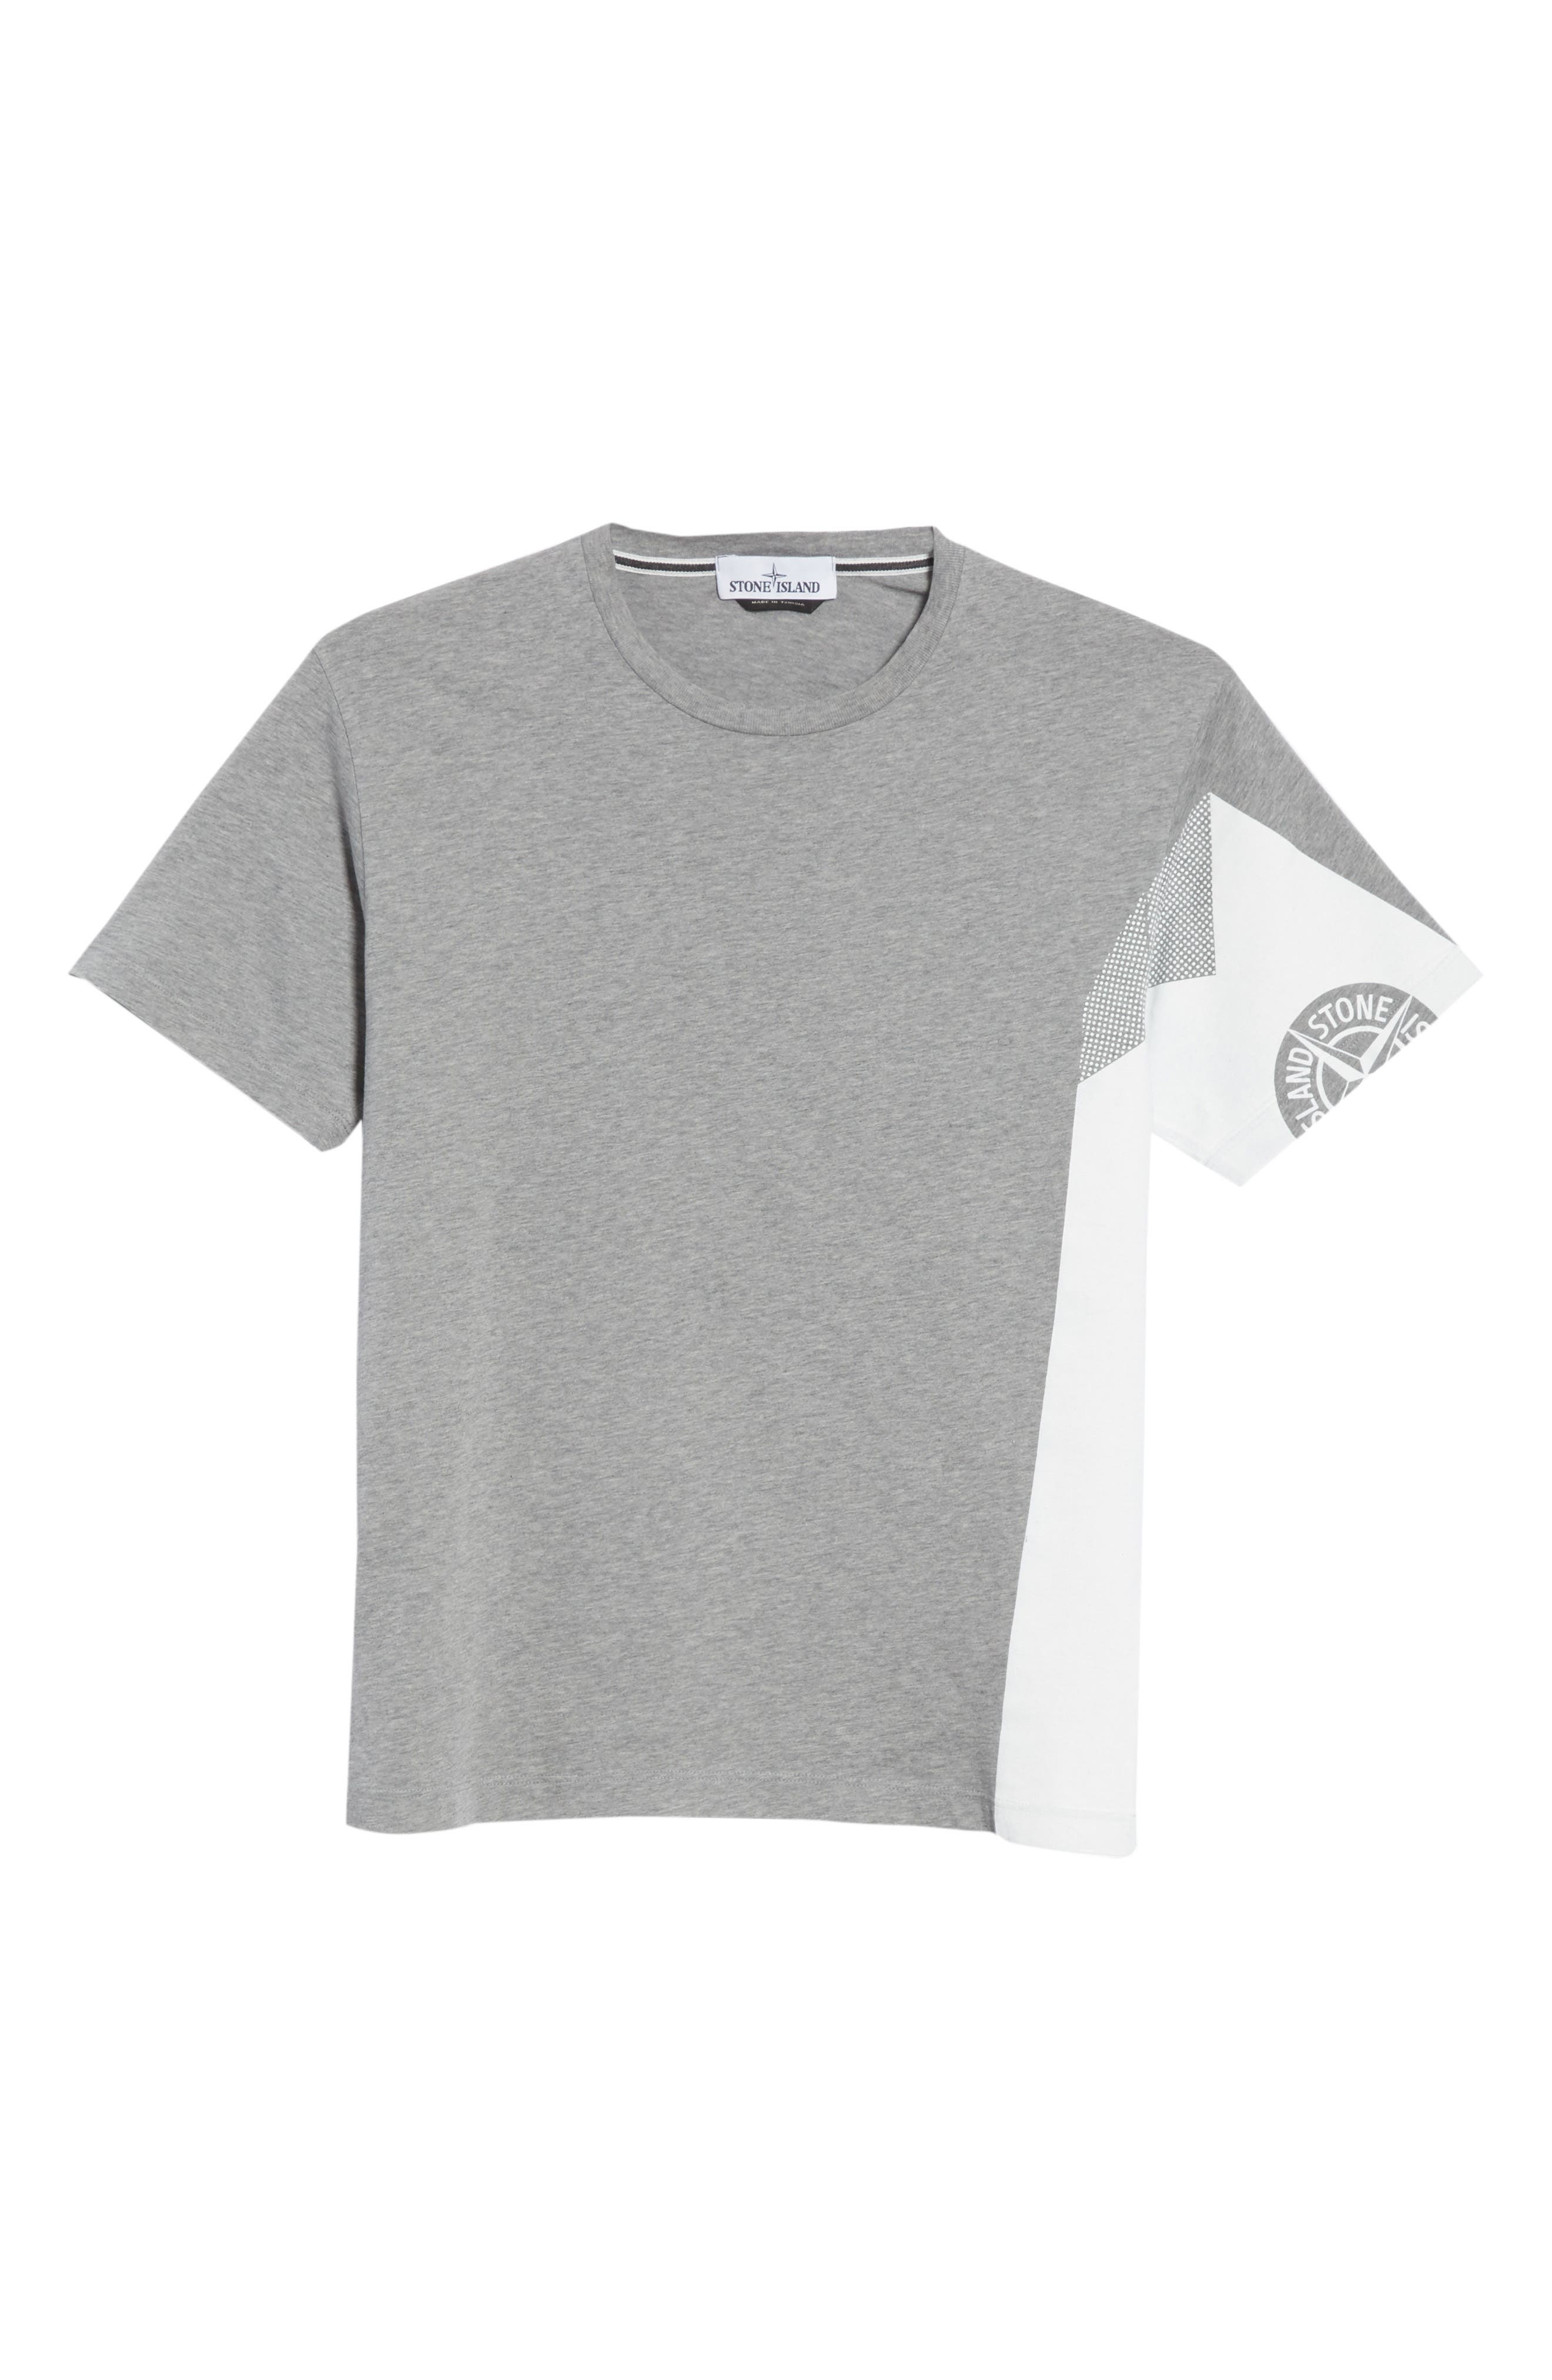 Graphic T-Shirt,                             Alternate thumbnail 6, color,                             Grey